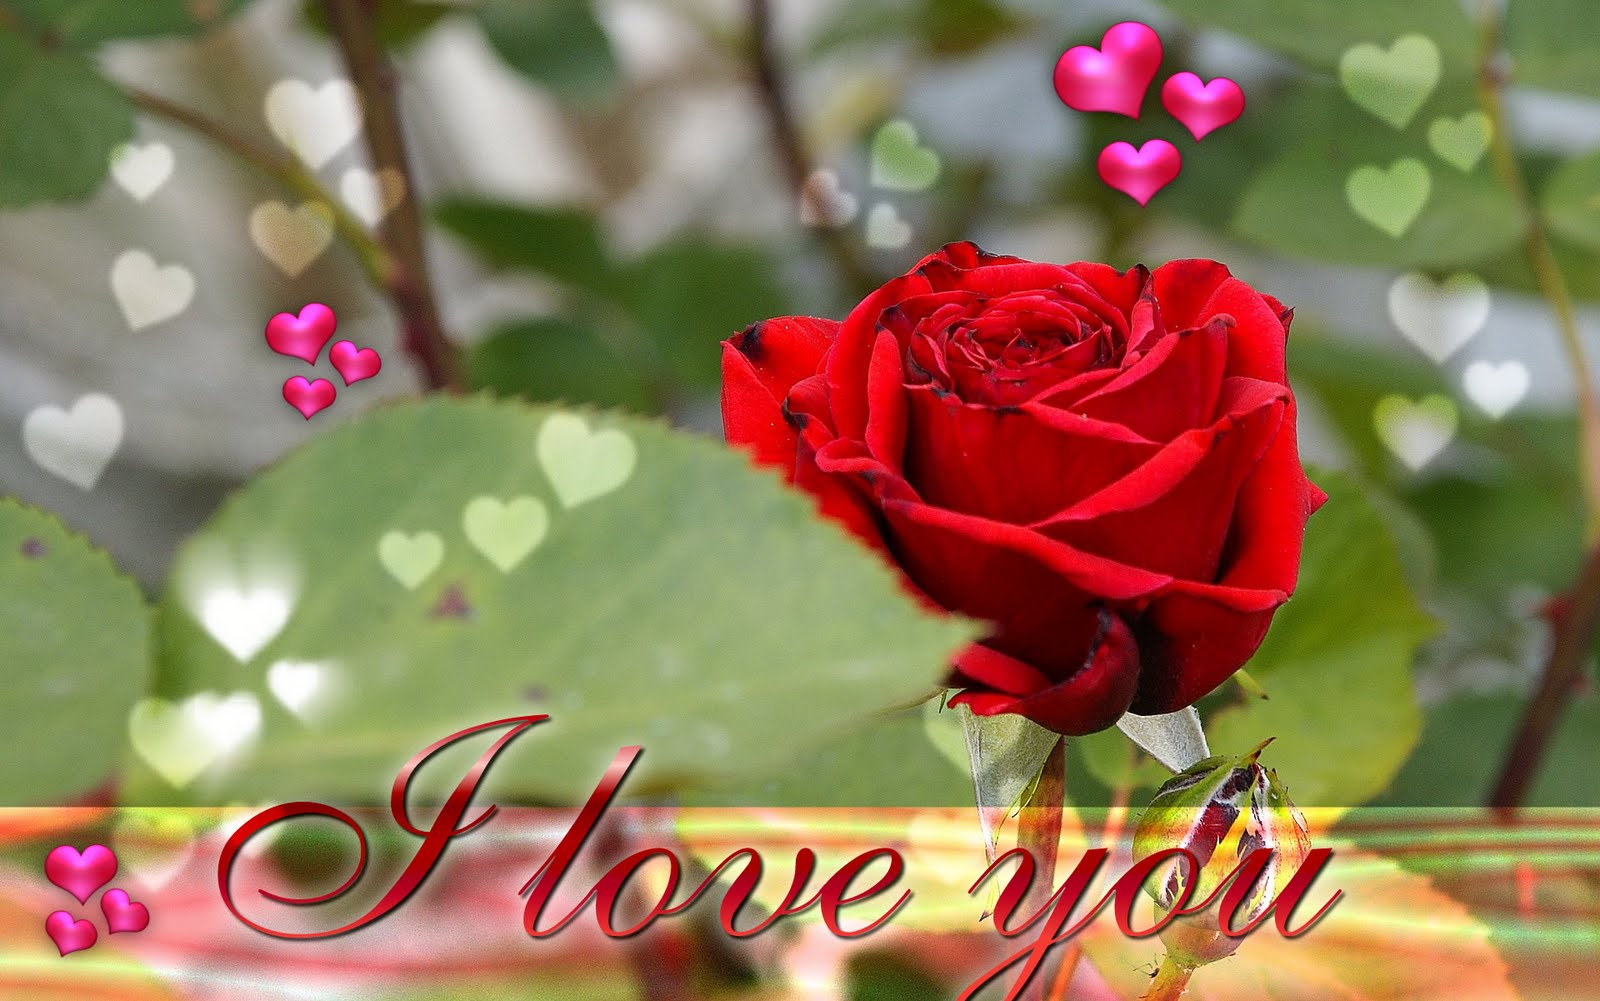 http://4.bp.blogspot.com/-0wQfV1m6r3Q/TawQkk3LBKI/AAAAAAAAAMY/leuRJDRcF_4/s1600/i-love-you-ecard-wallpaper-21.jpg